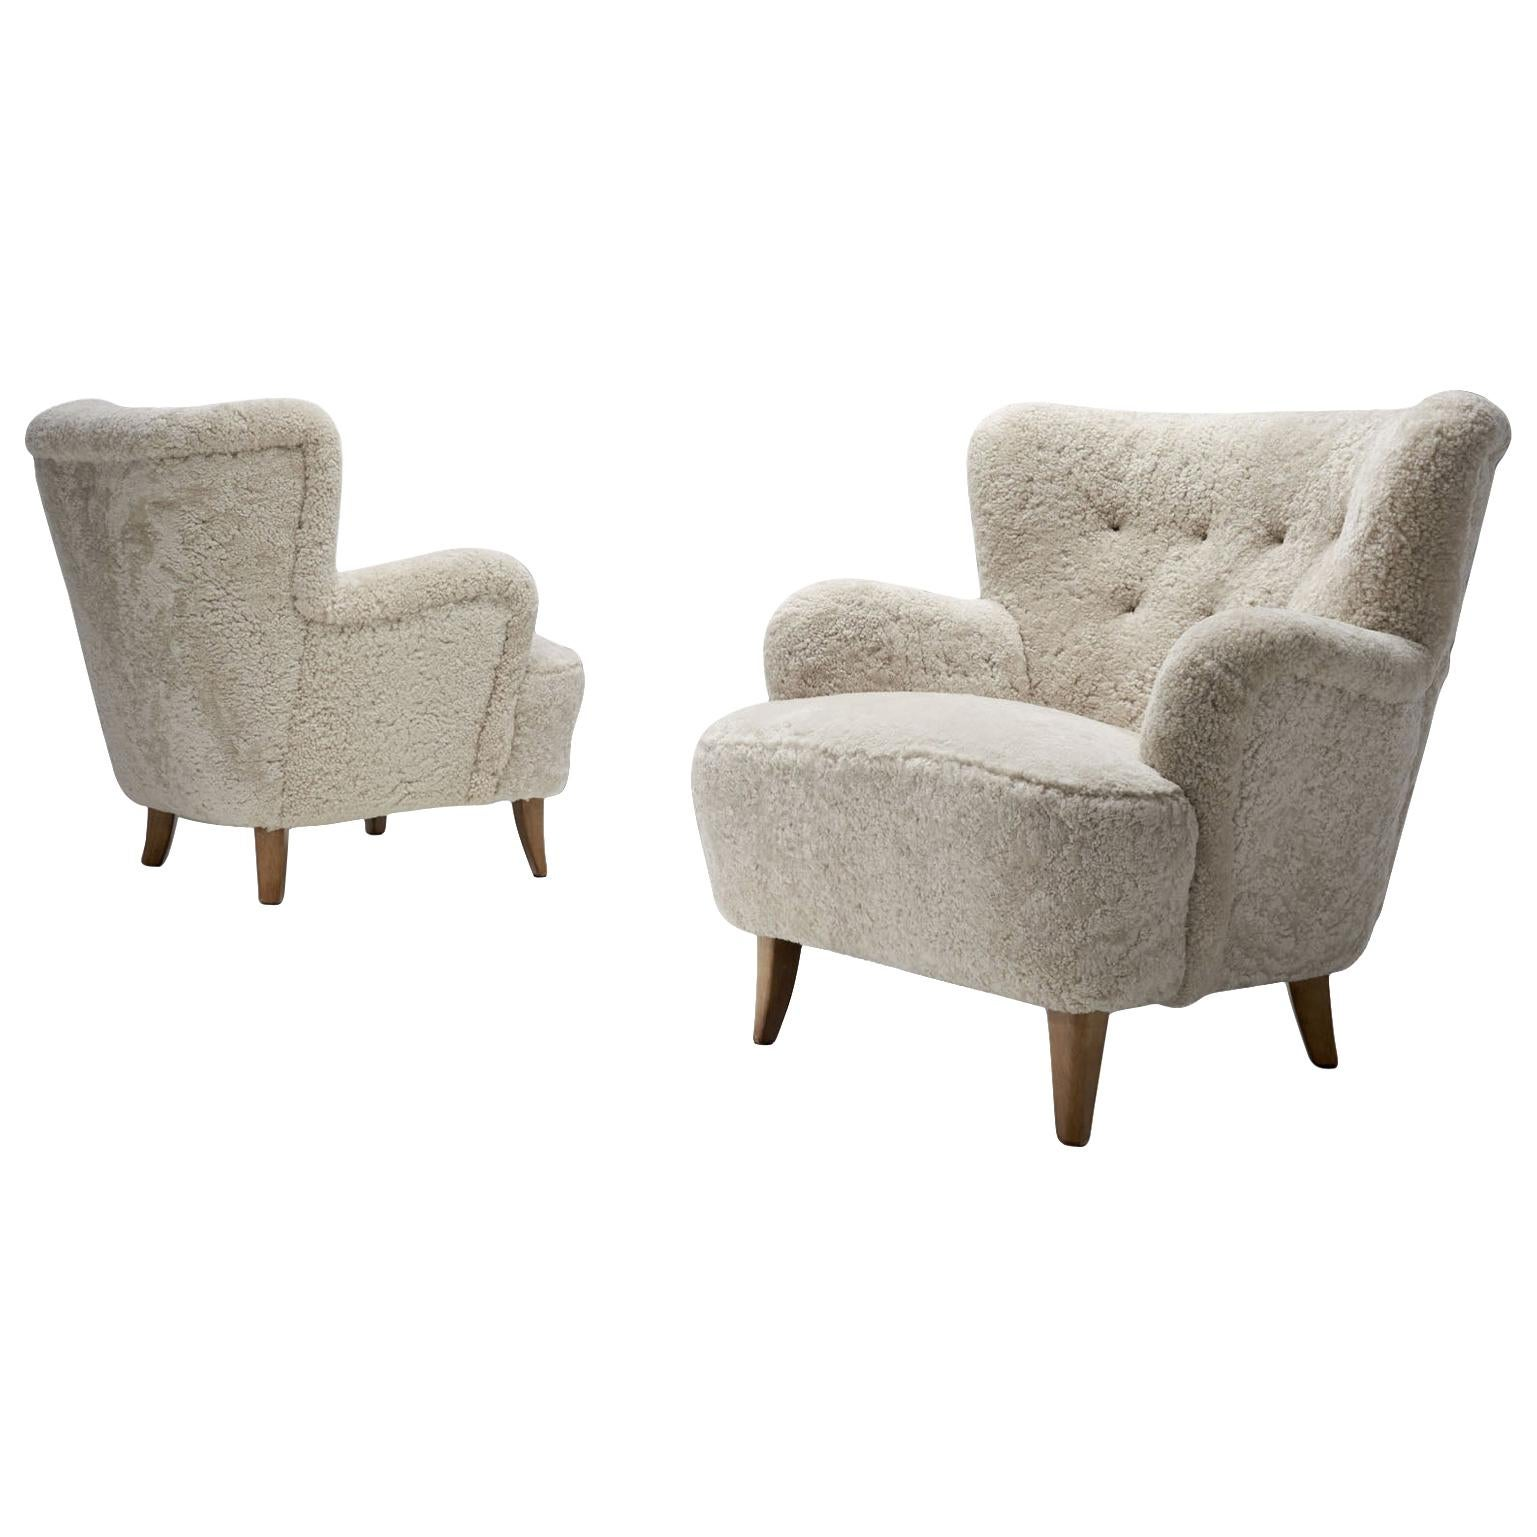 """Pair of """"Laila"""" Armchairs by Ilmari Lappalainen for Asko, Finland, 1948"""